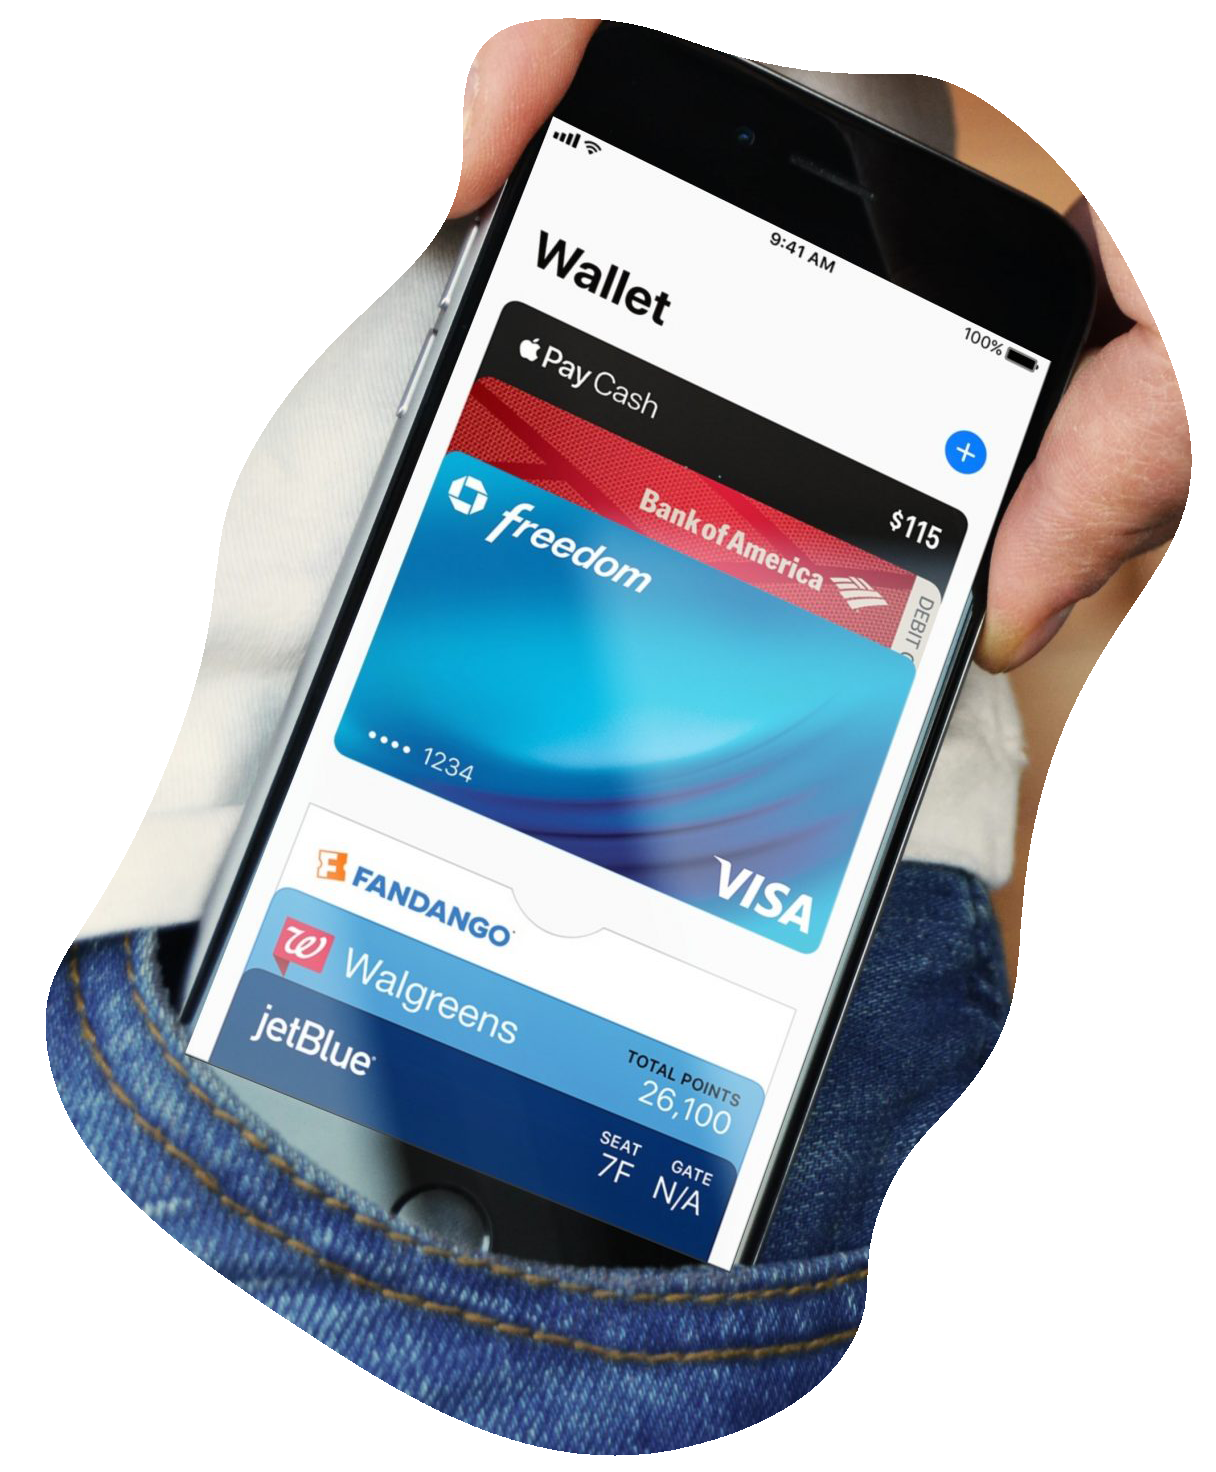 An example of a Mobile Wallet.